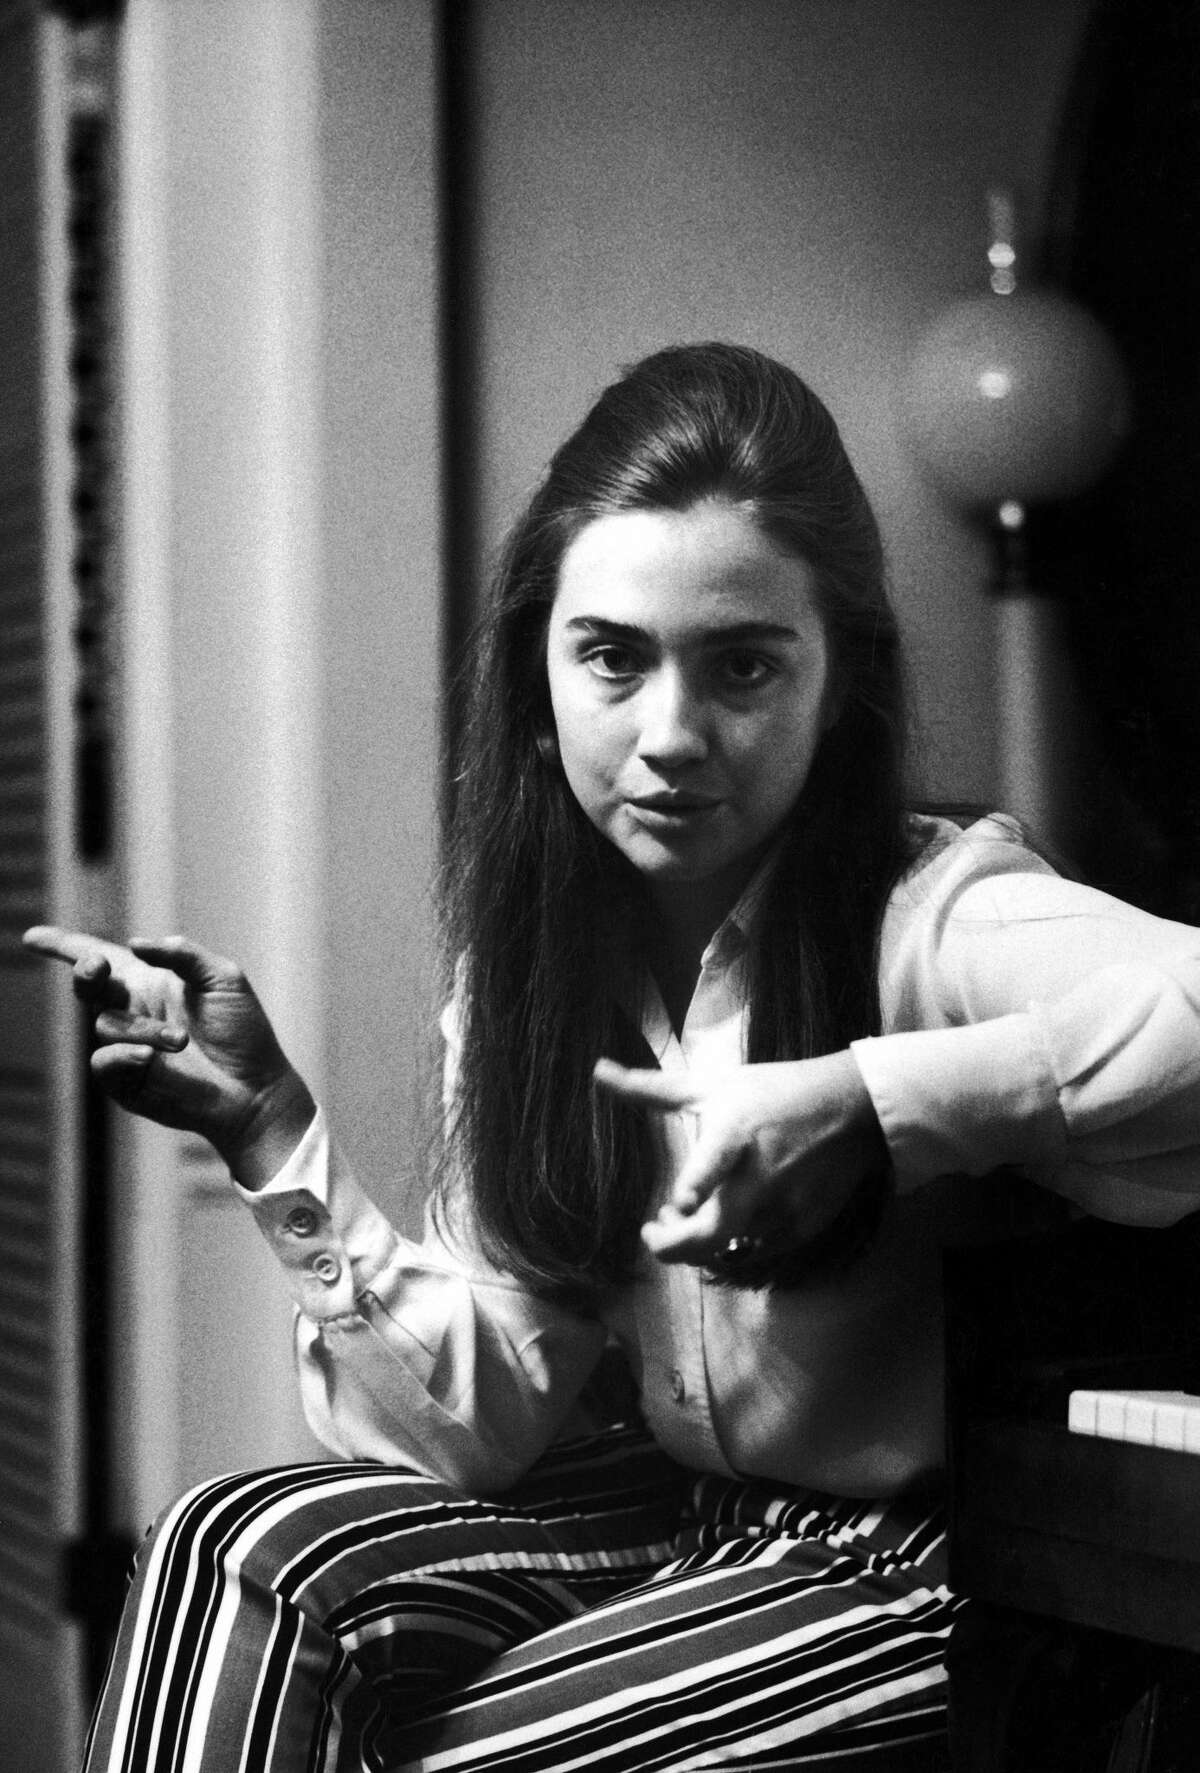 1969Class leader Hillary Rodham of Wellesley College talking about student protests which she supported in her commencement speech. (Photo by Lee Balterman/The LIFE Picture Collection/Getty Images)